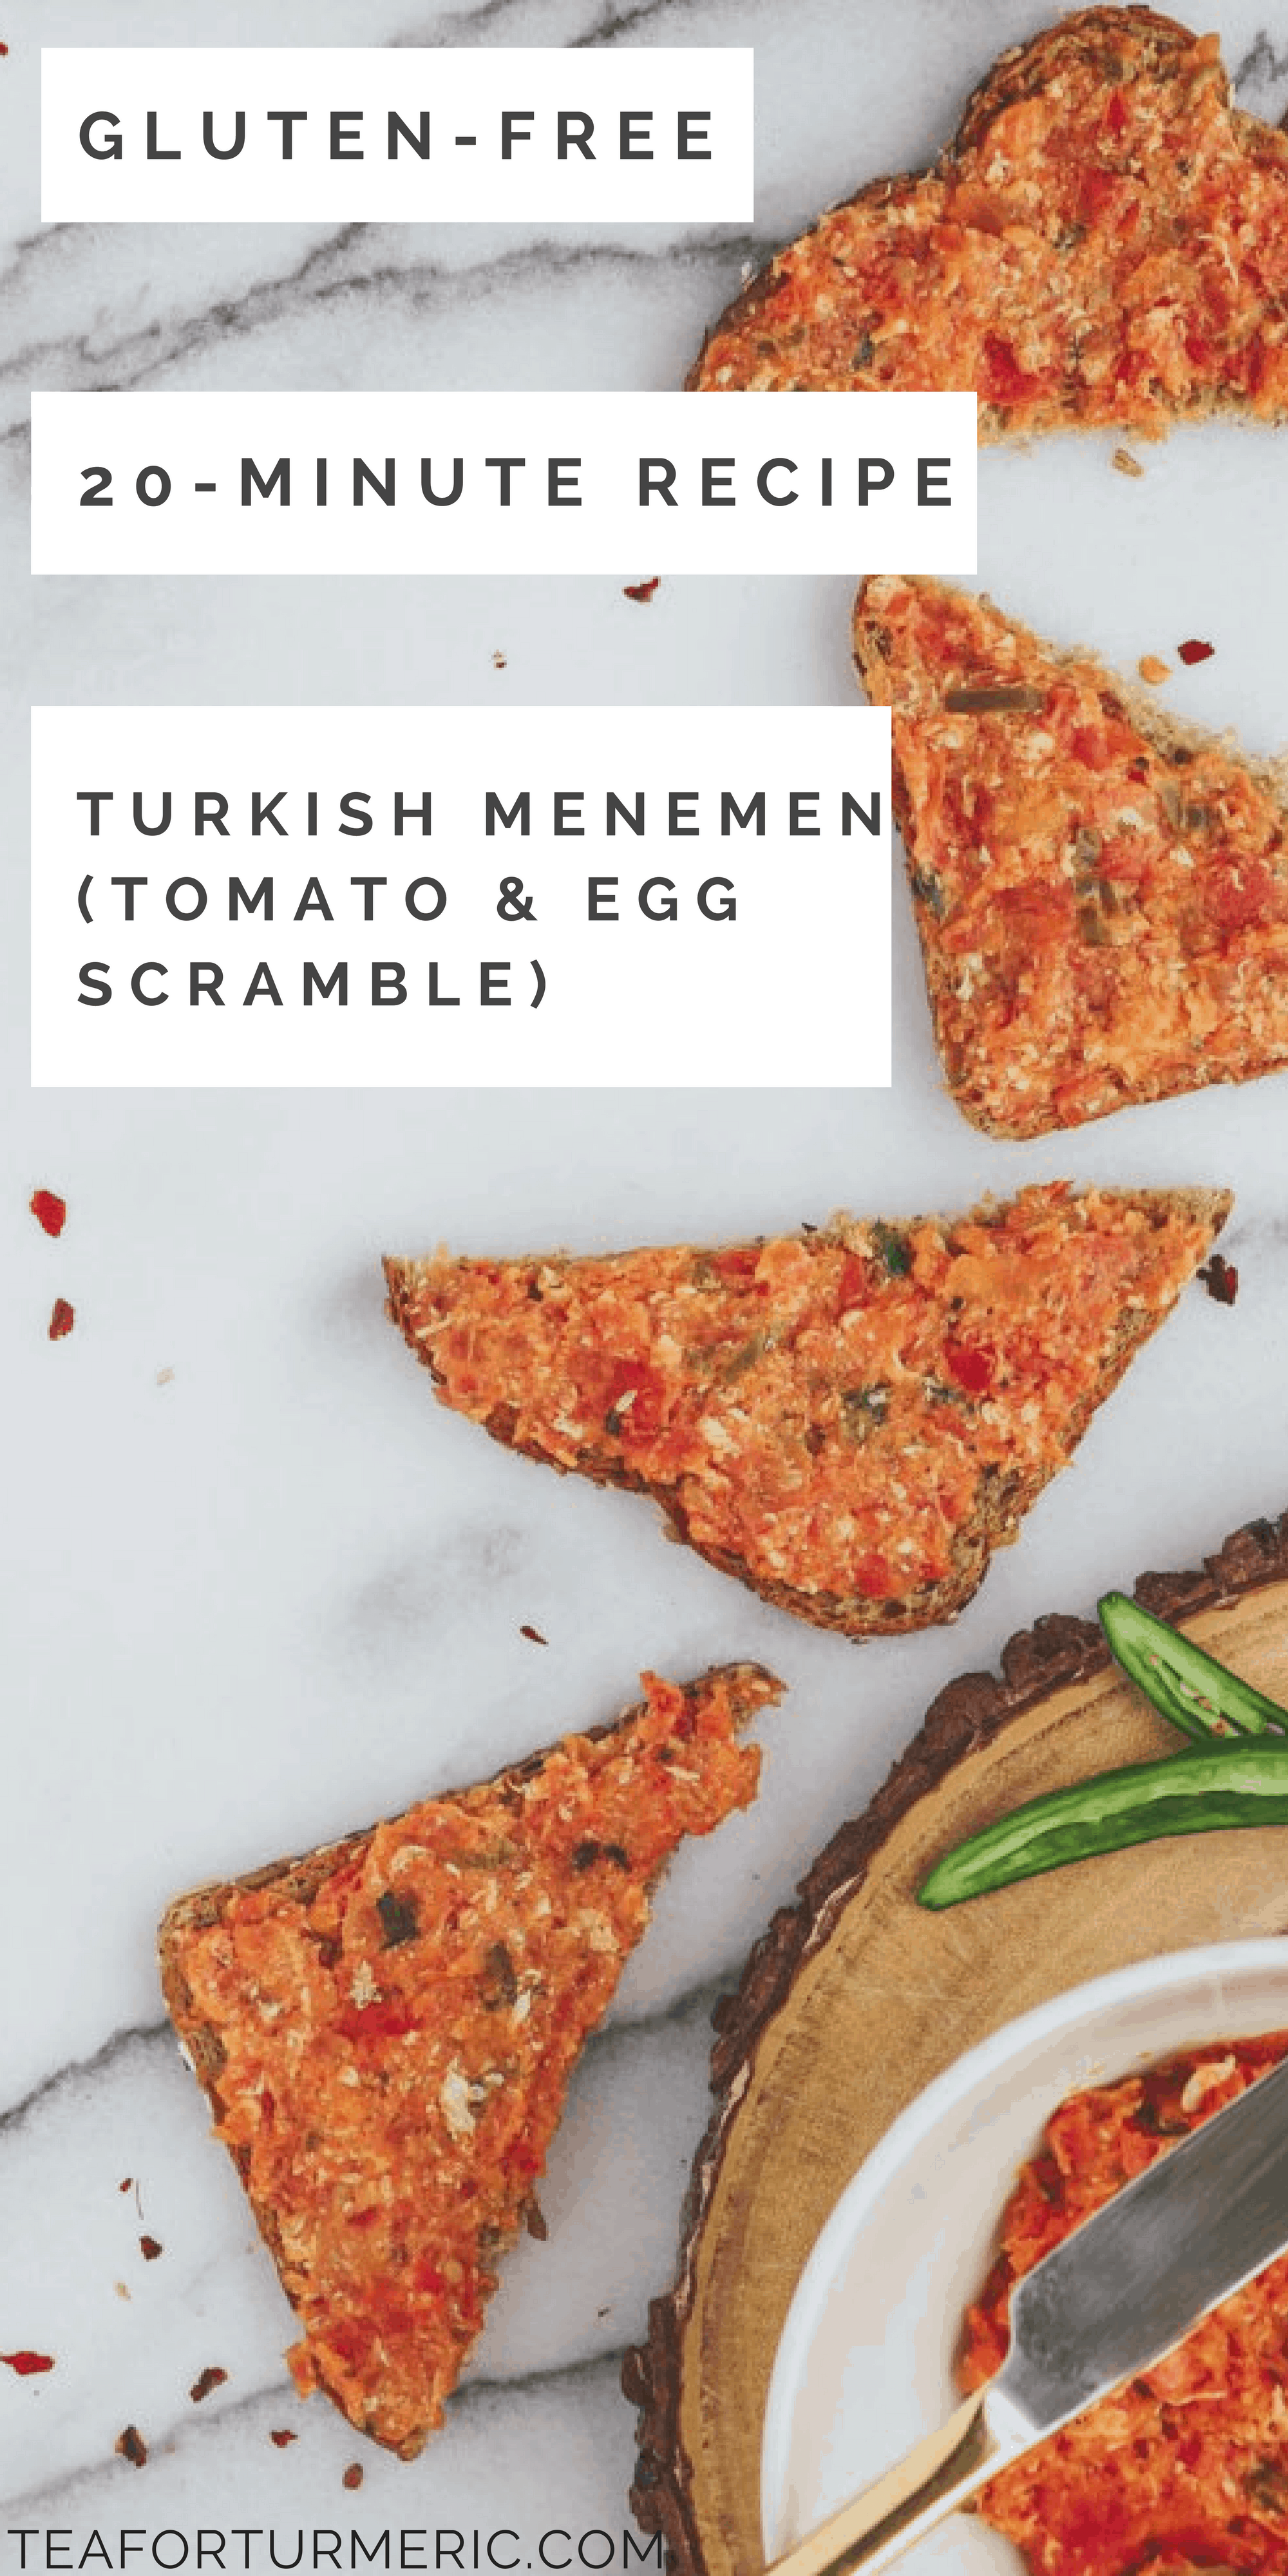 Turkish Menemen is a traditional Turkish breakfast that\'s made with simple ingredients like peppers, tomatoes, and eggs. Yet the combination of flavors and style of cooking lends it an extra special taste. This is the perfect 20-minute breakfast that\'s perfect for any day of the week. Nutritious and delicious!